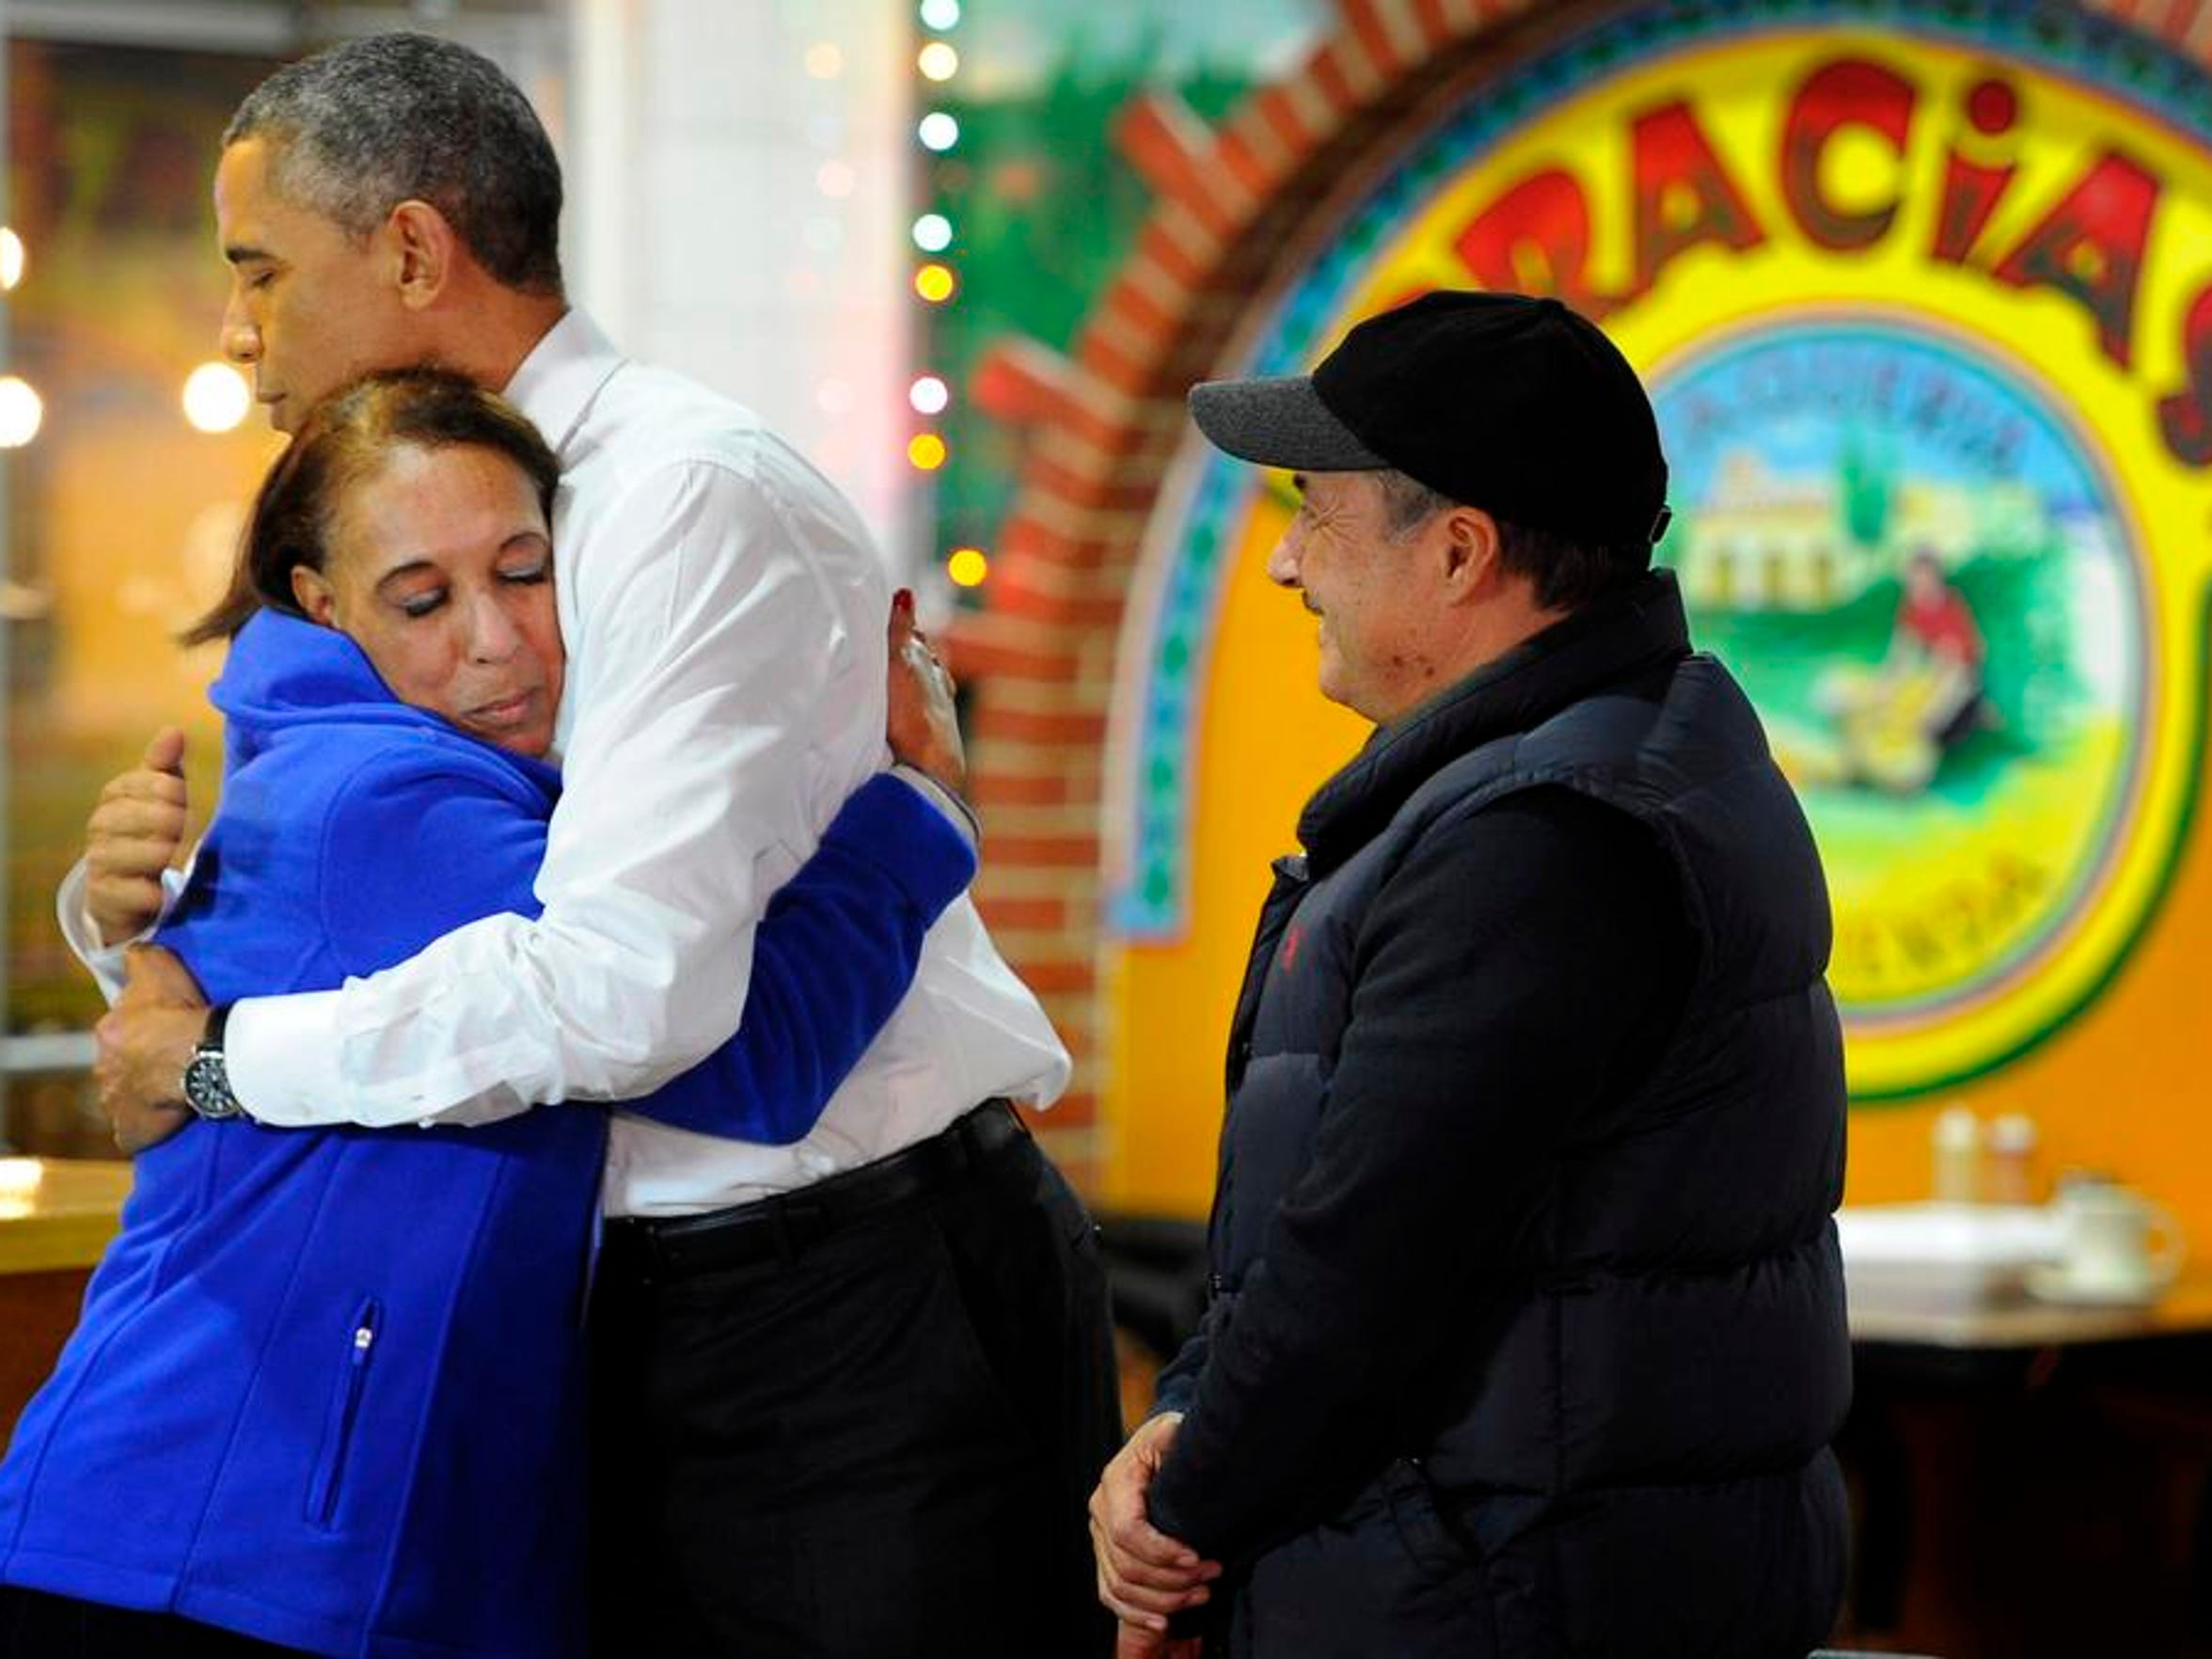 President Barack Obama hugs Lilia Yepez as he visits with Carlos Yepez during a visit to La Hacienda Taquiera on Nolensville Rd. Tuesday Dec. 9, 2014, in Nashville, Tenn.